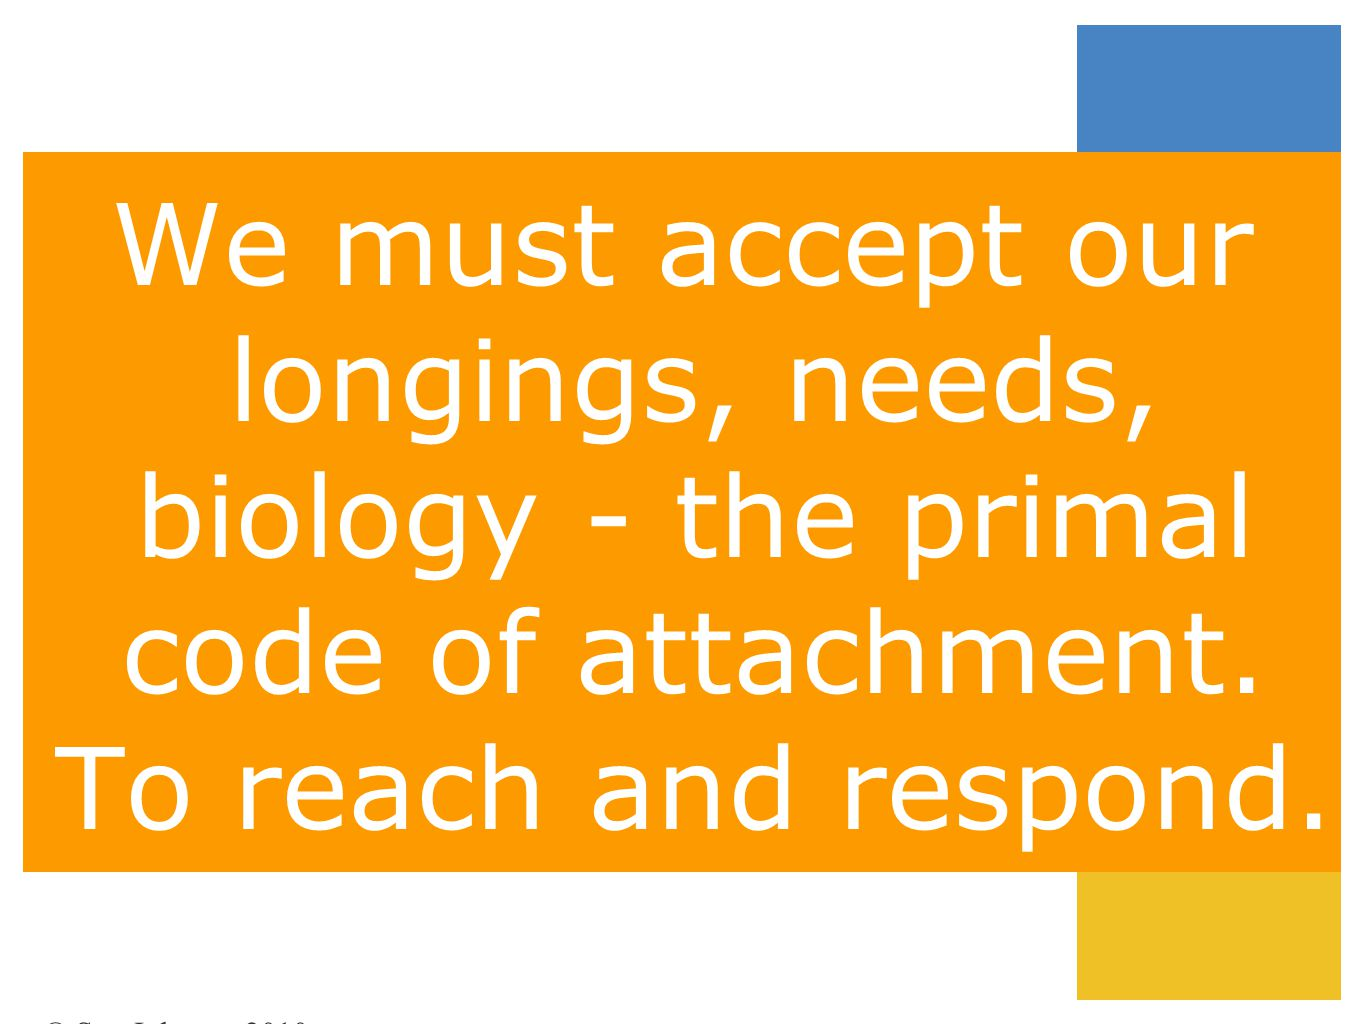 We must accept our longings, needs, biology - the primal code of attachment. To reach and respond.